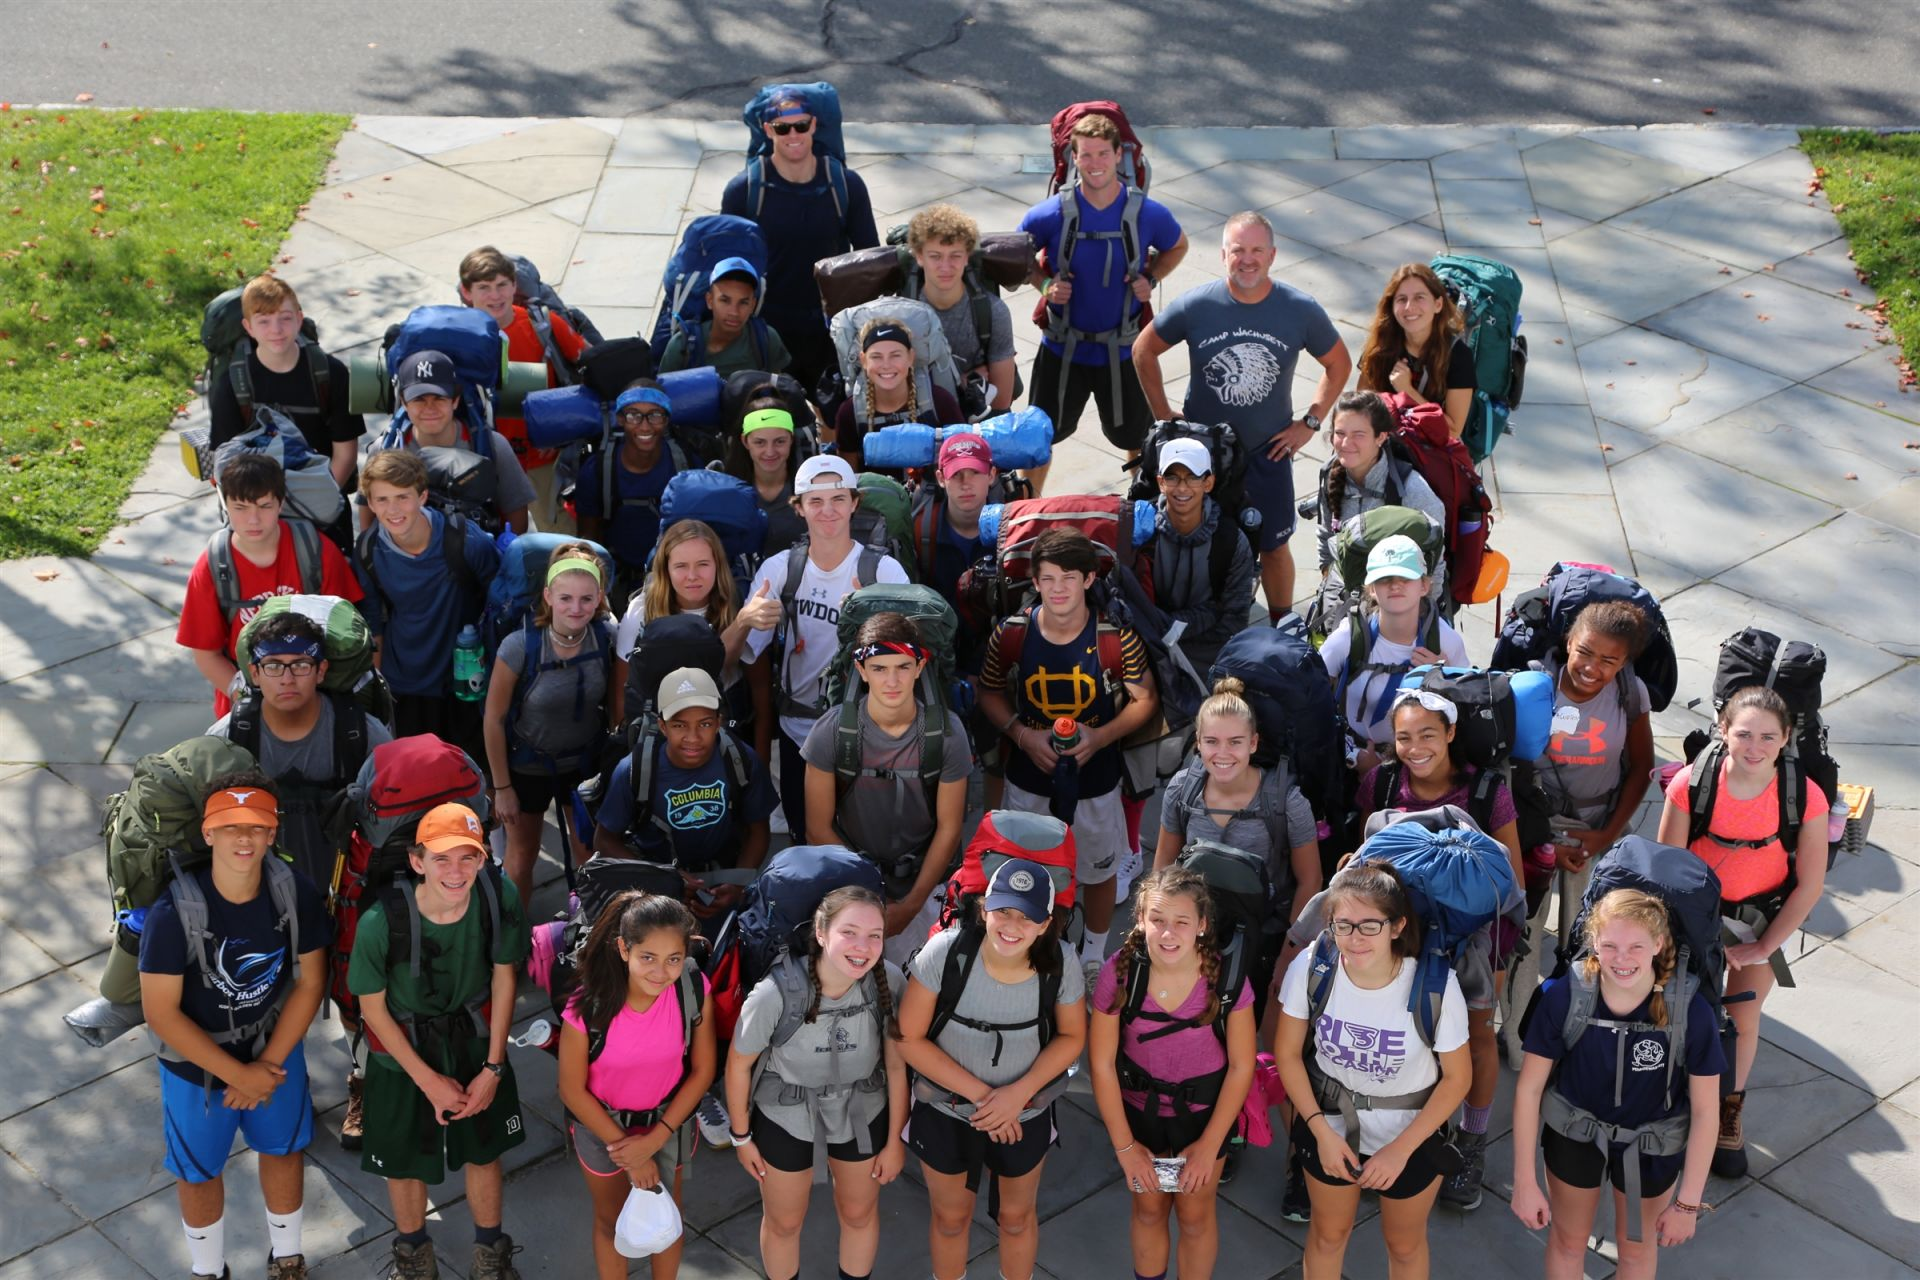 The ninth grade year begins with a 3-day hike of the Appalachian Trail. With its focus on class bonding and leadership, the <b>Outdoor Action Trip </b> is a longstanding, celebrated, and essential component of the 9th grade experience at Country School.